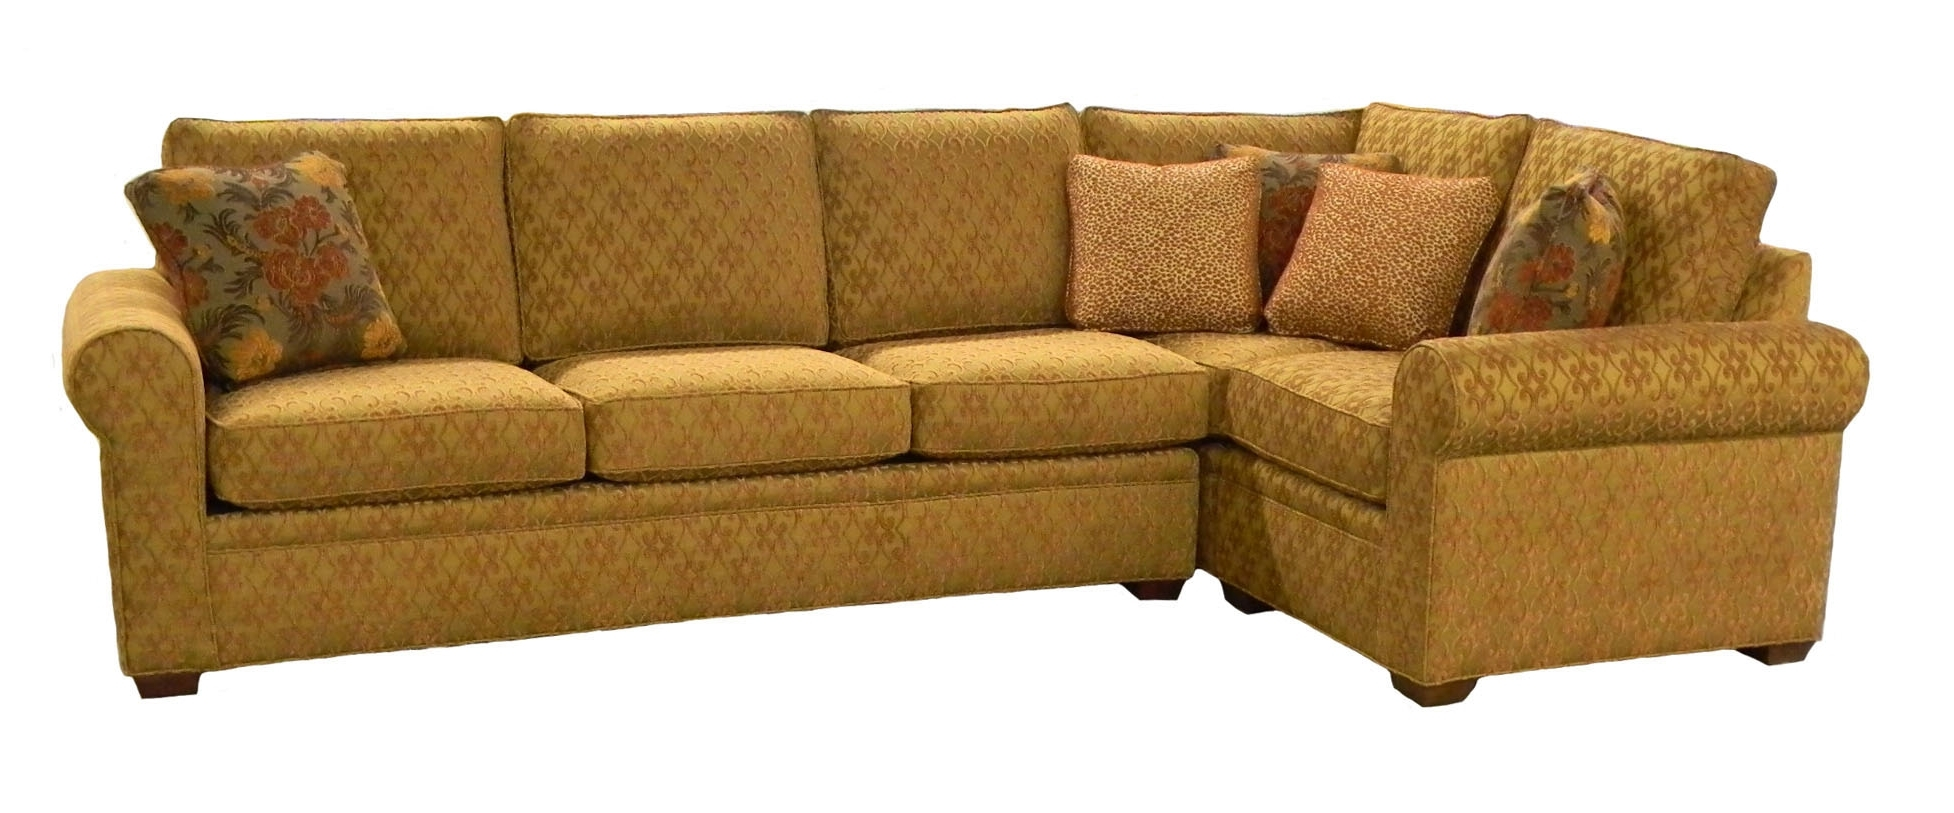 Preferred Made In North Carolina Sectional Sofas Regarding Photos Examples Custom Sectional Sofas Carolina Chair Furniture (View 15 of 20)